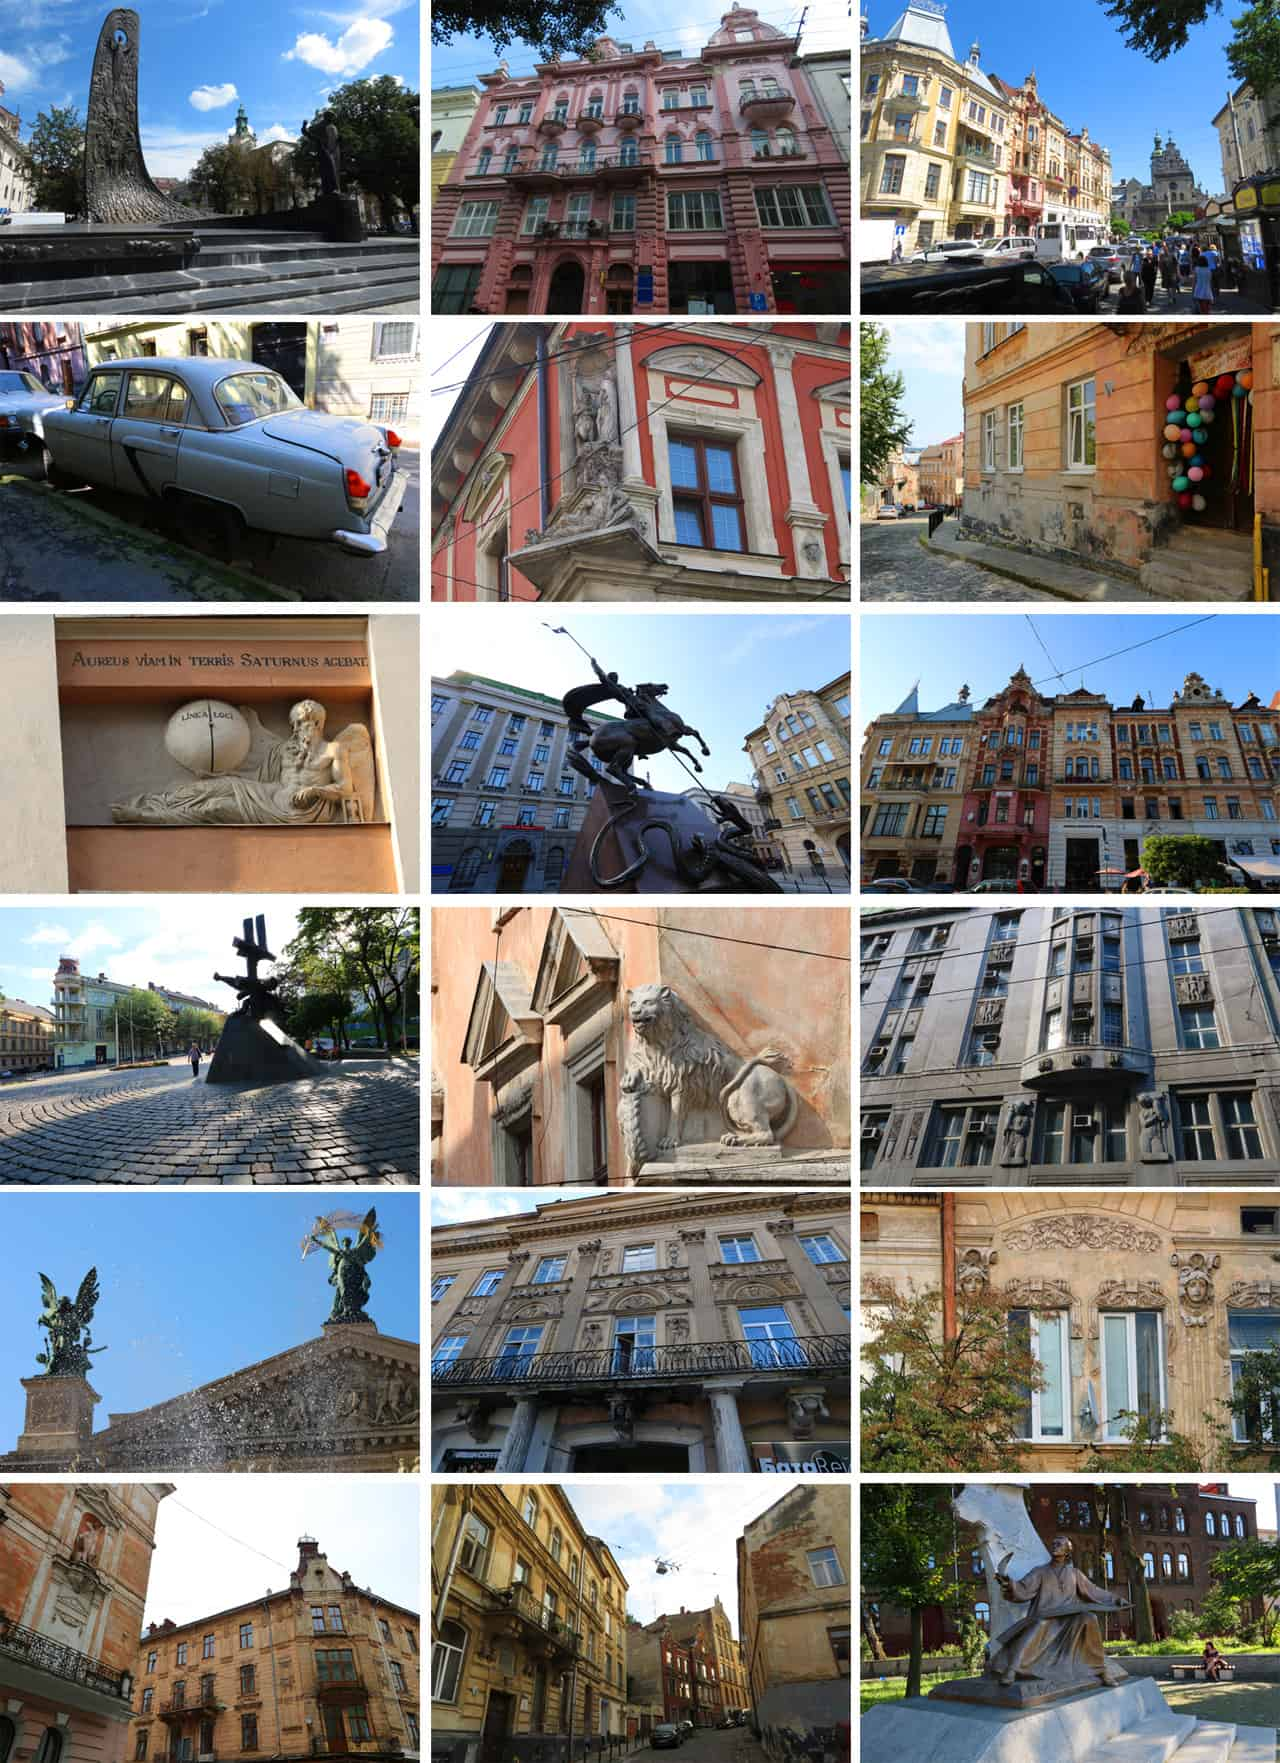 Lviv images. Is Lviv (Ukraine) the most underrated city In Europe?